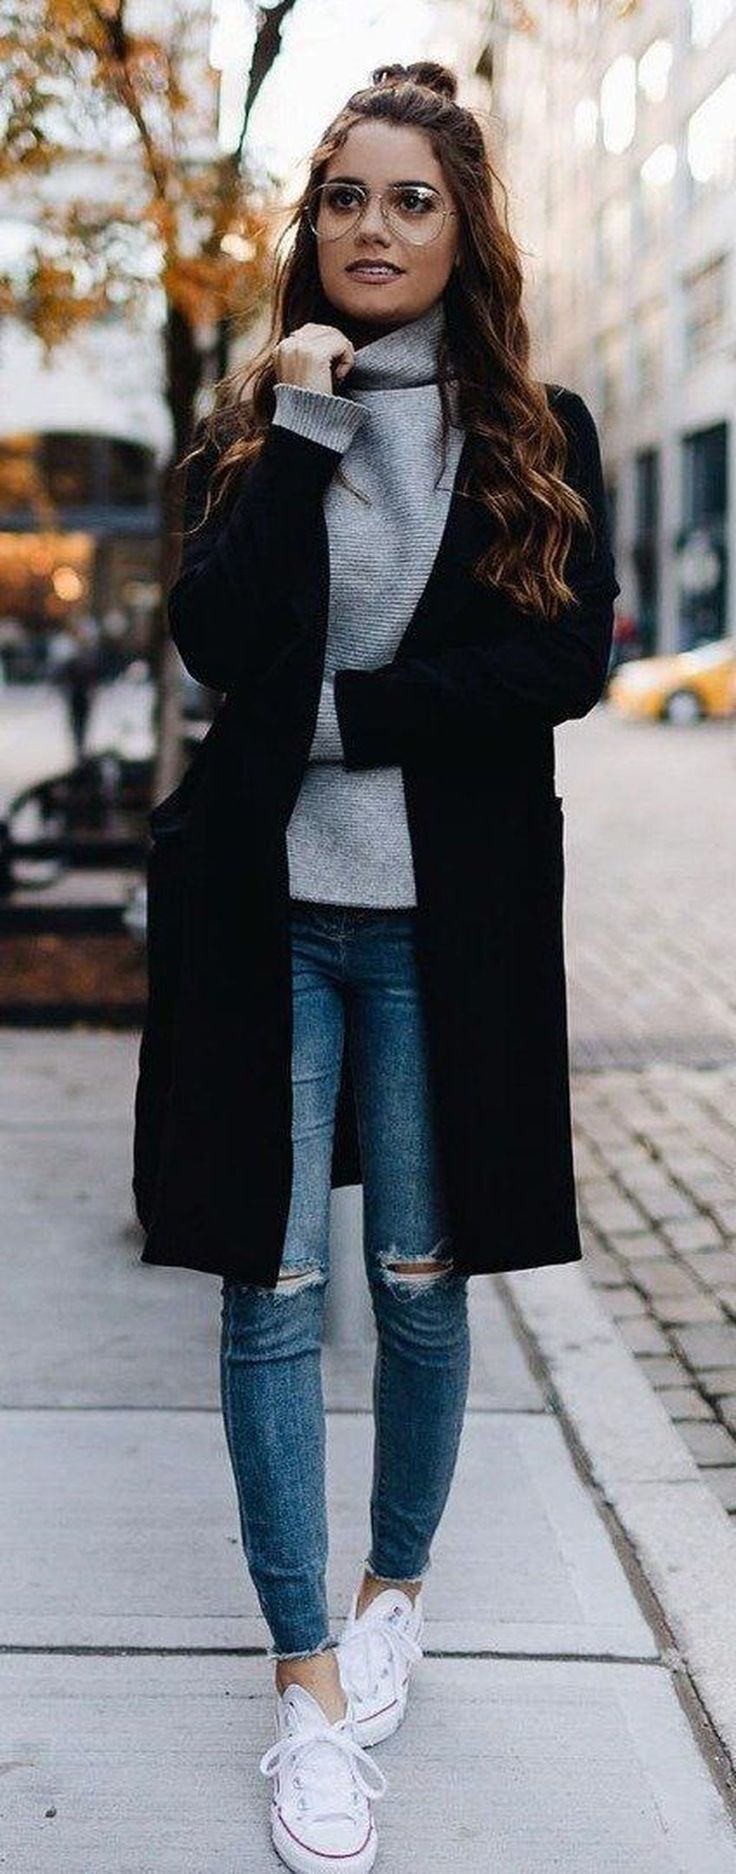 Nice 42 Best Casual Winter Outfit Ideas 2017 for Women. More at http://aksahinjewelry.com/2018/01/05/42-best-casual-winter-outfit-ideas-2017-women/ #trendymoda